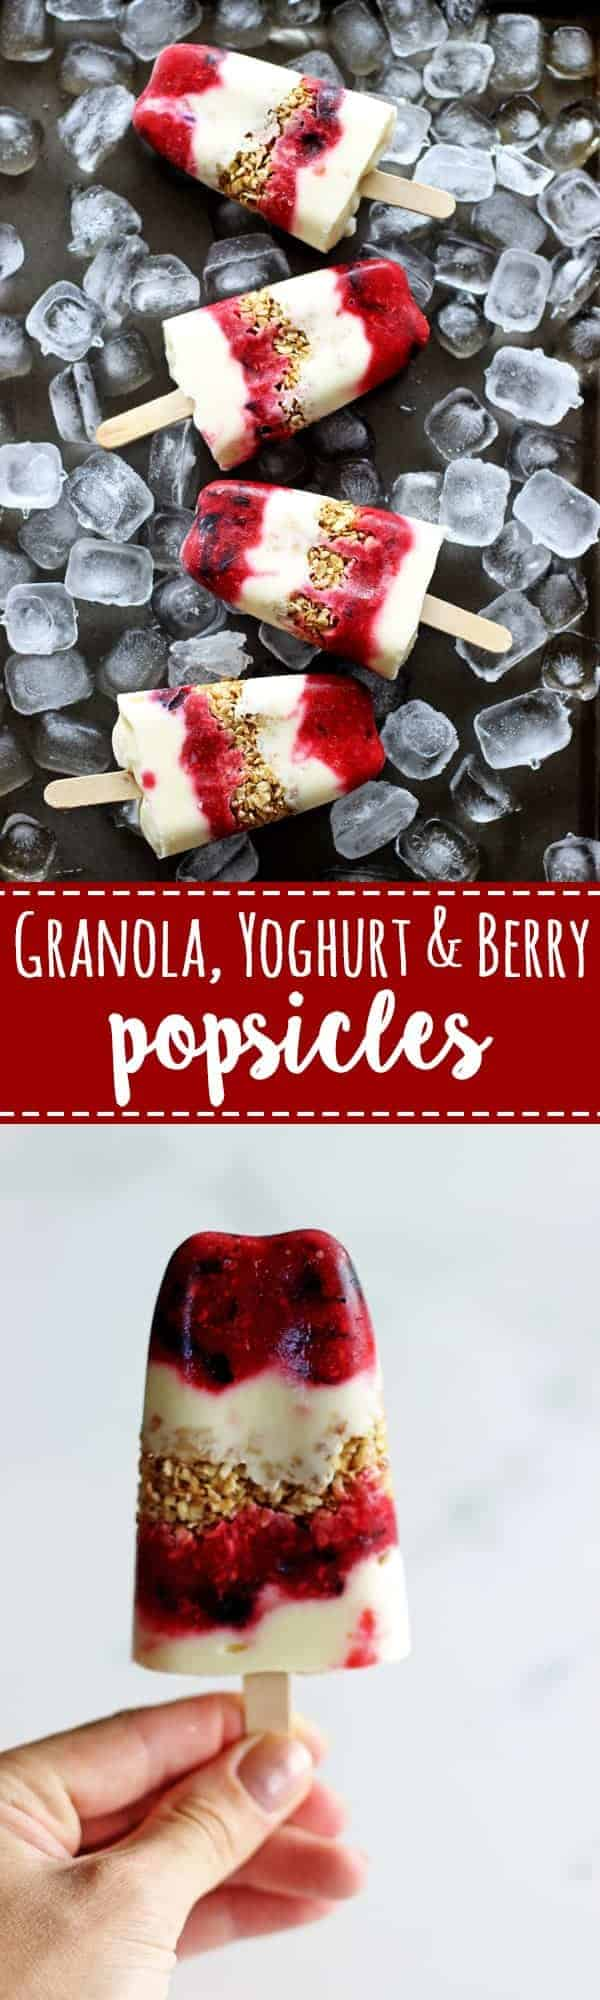 The perfect summer breakfast on the run or a snack for anytime is granola, yoghurt & berry popsicles. Healthy, easy to make and pretty! | thekiwicountrygirl.com